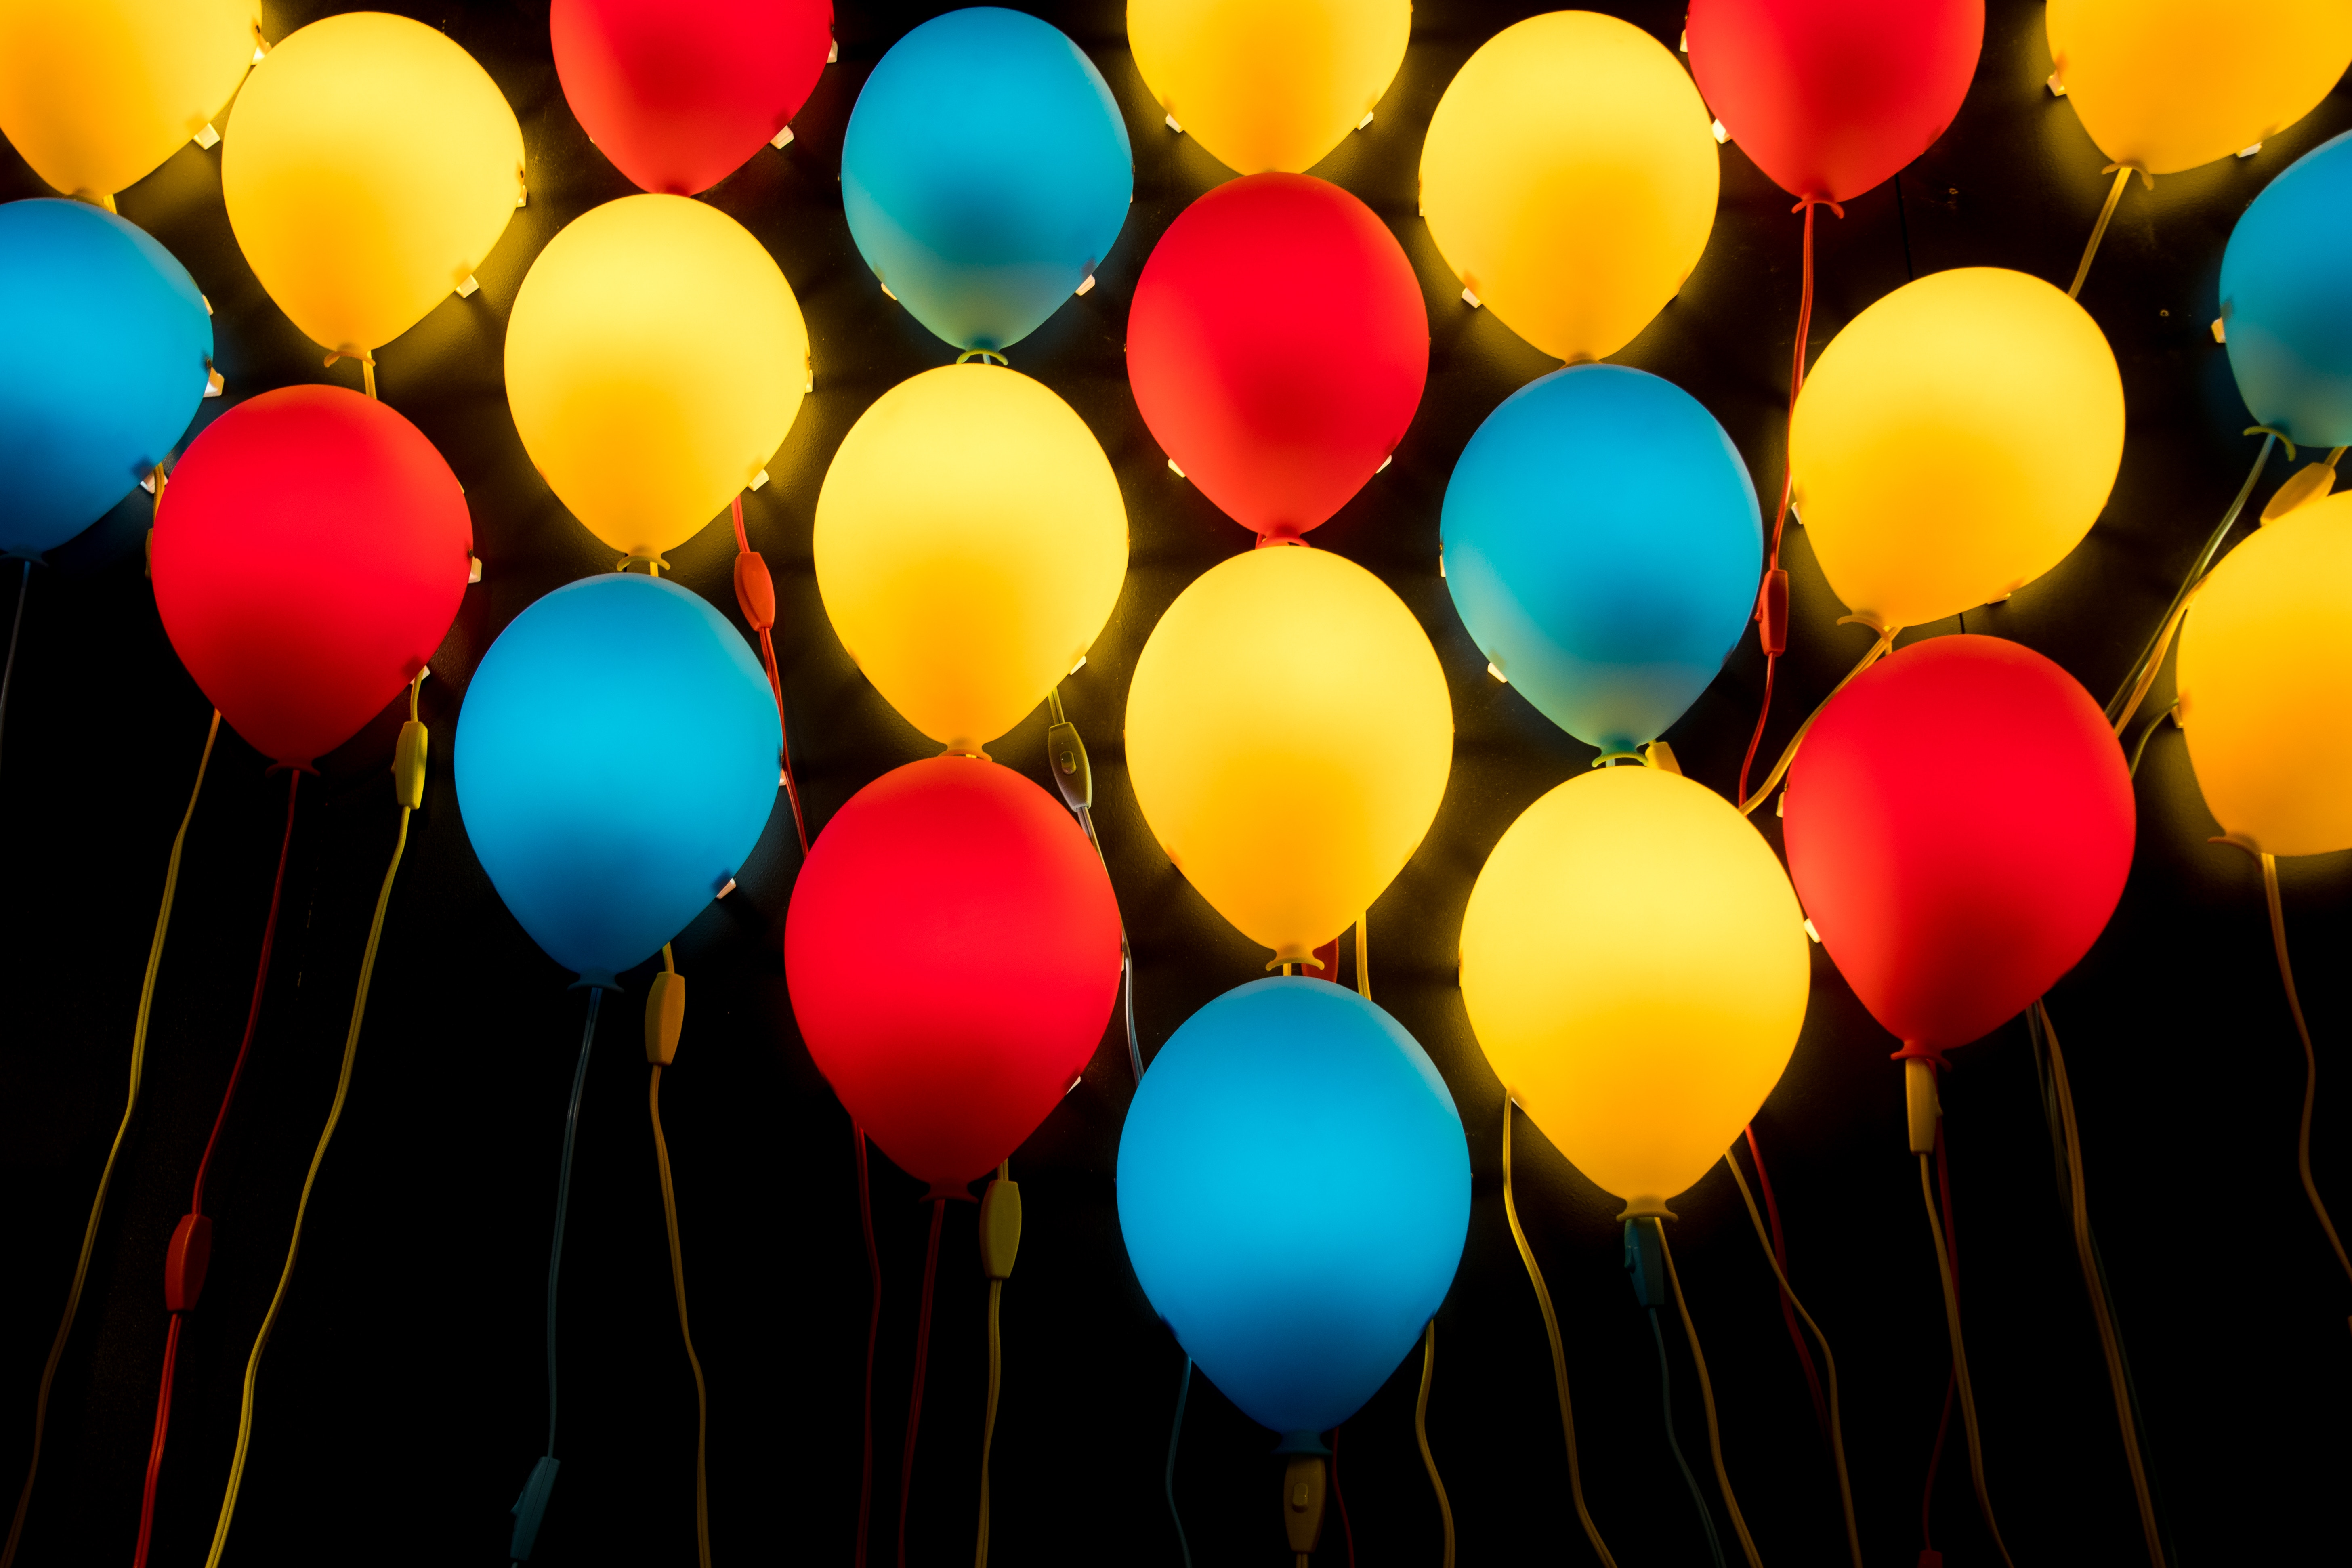 91735 Screensavers and Wallpapers Balloons for phone. Download Balloons, Miscellanea, Miscellaneous, Multicolored, Motley, Lamp, Lamps, Air Balloons pictures for free